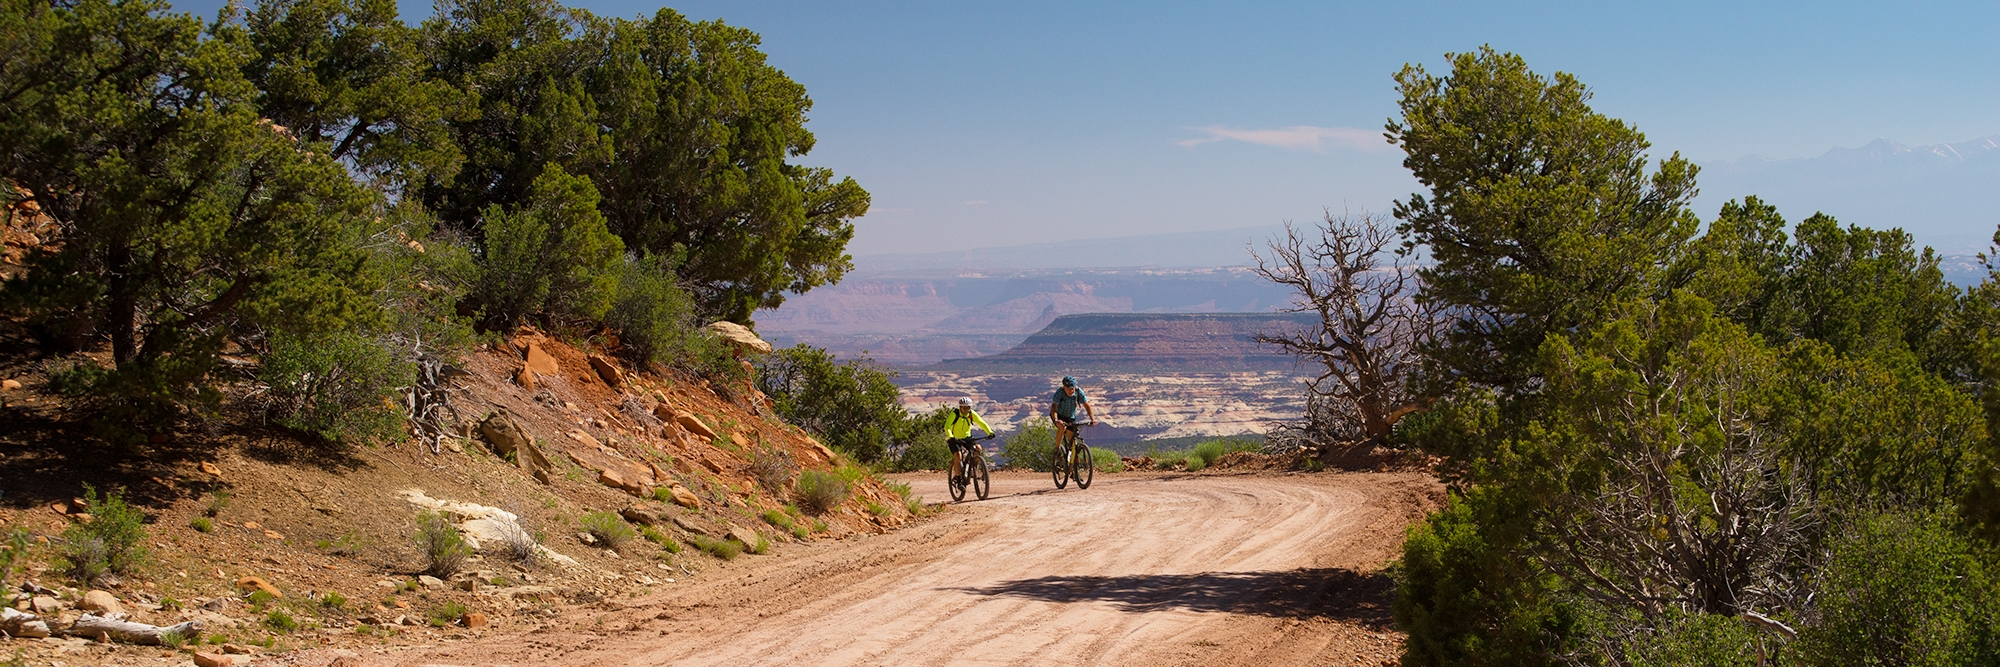 Riders on the Bears Ears tour begin the descent toward Cathedral Butte